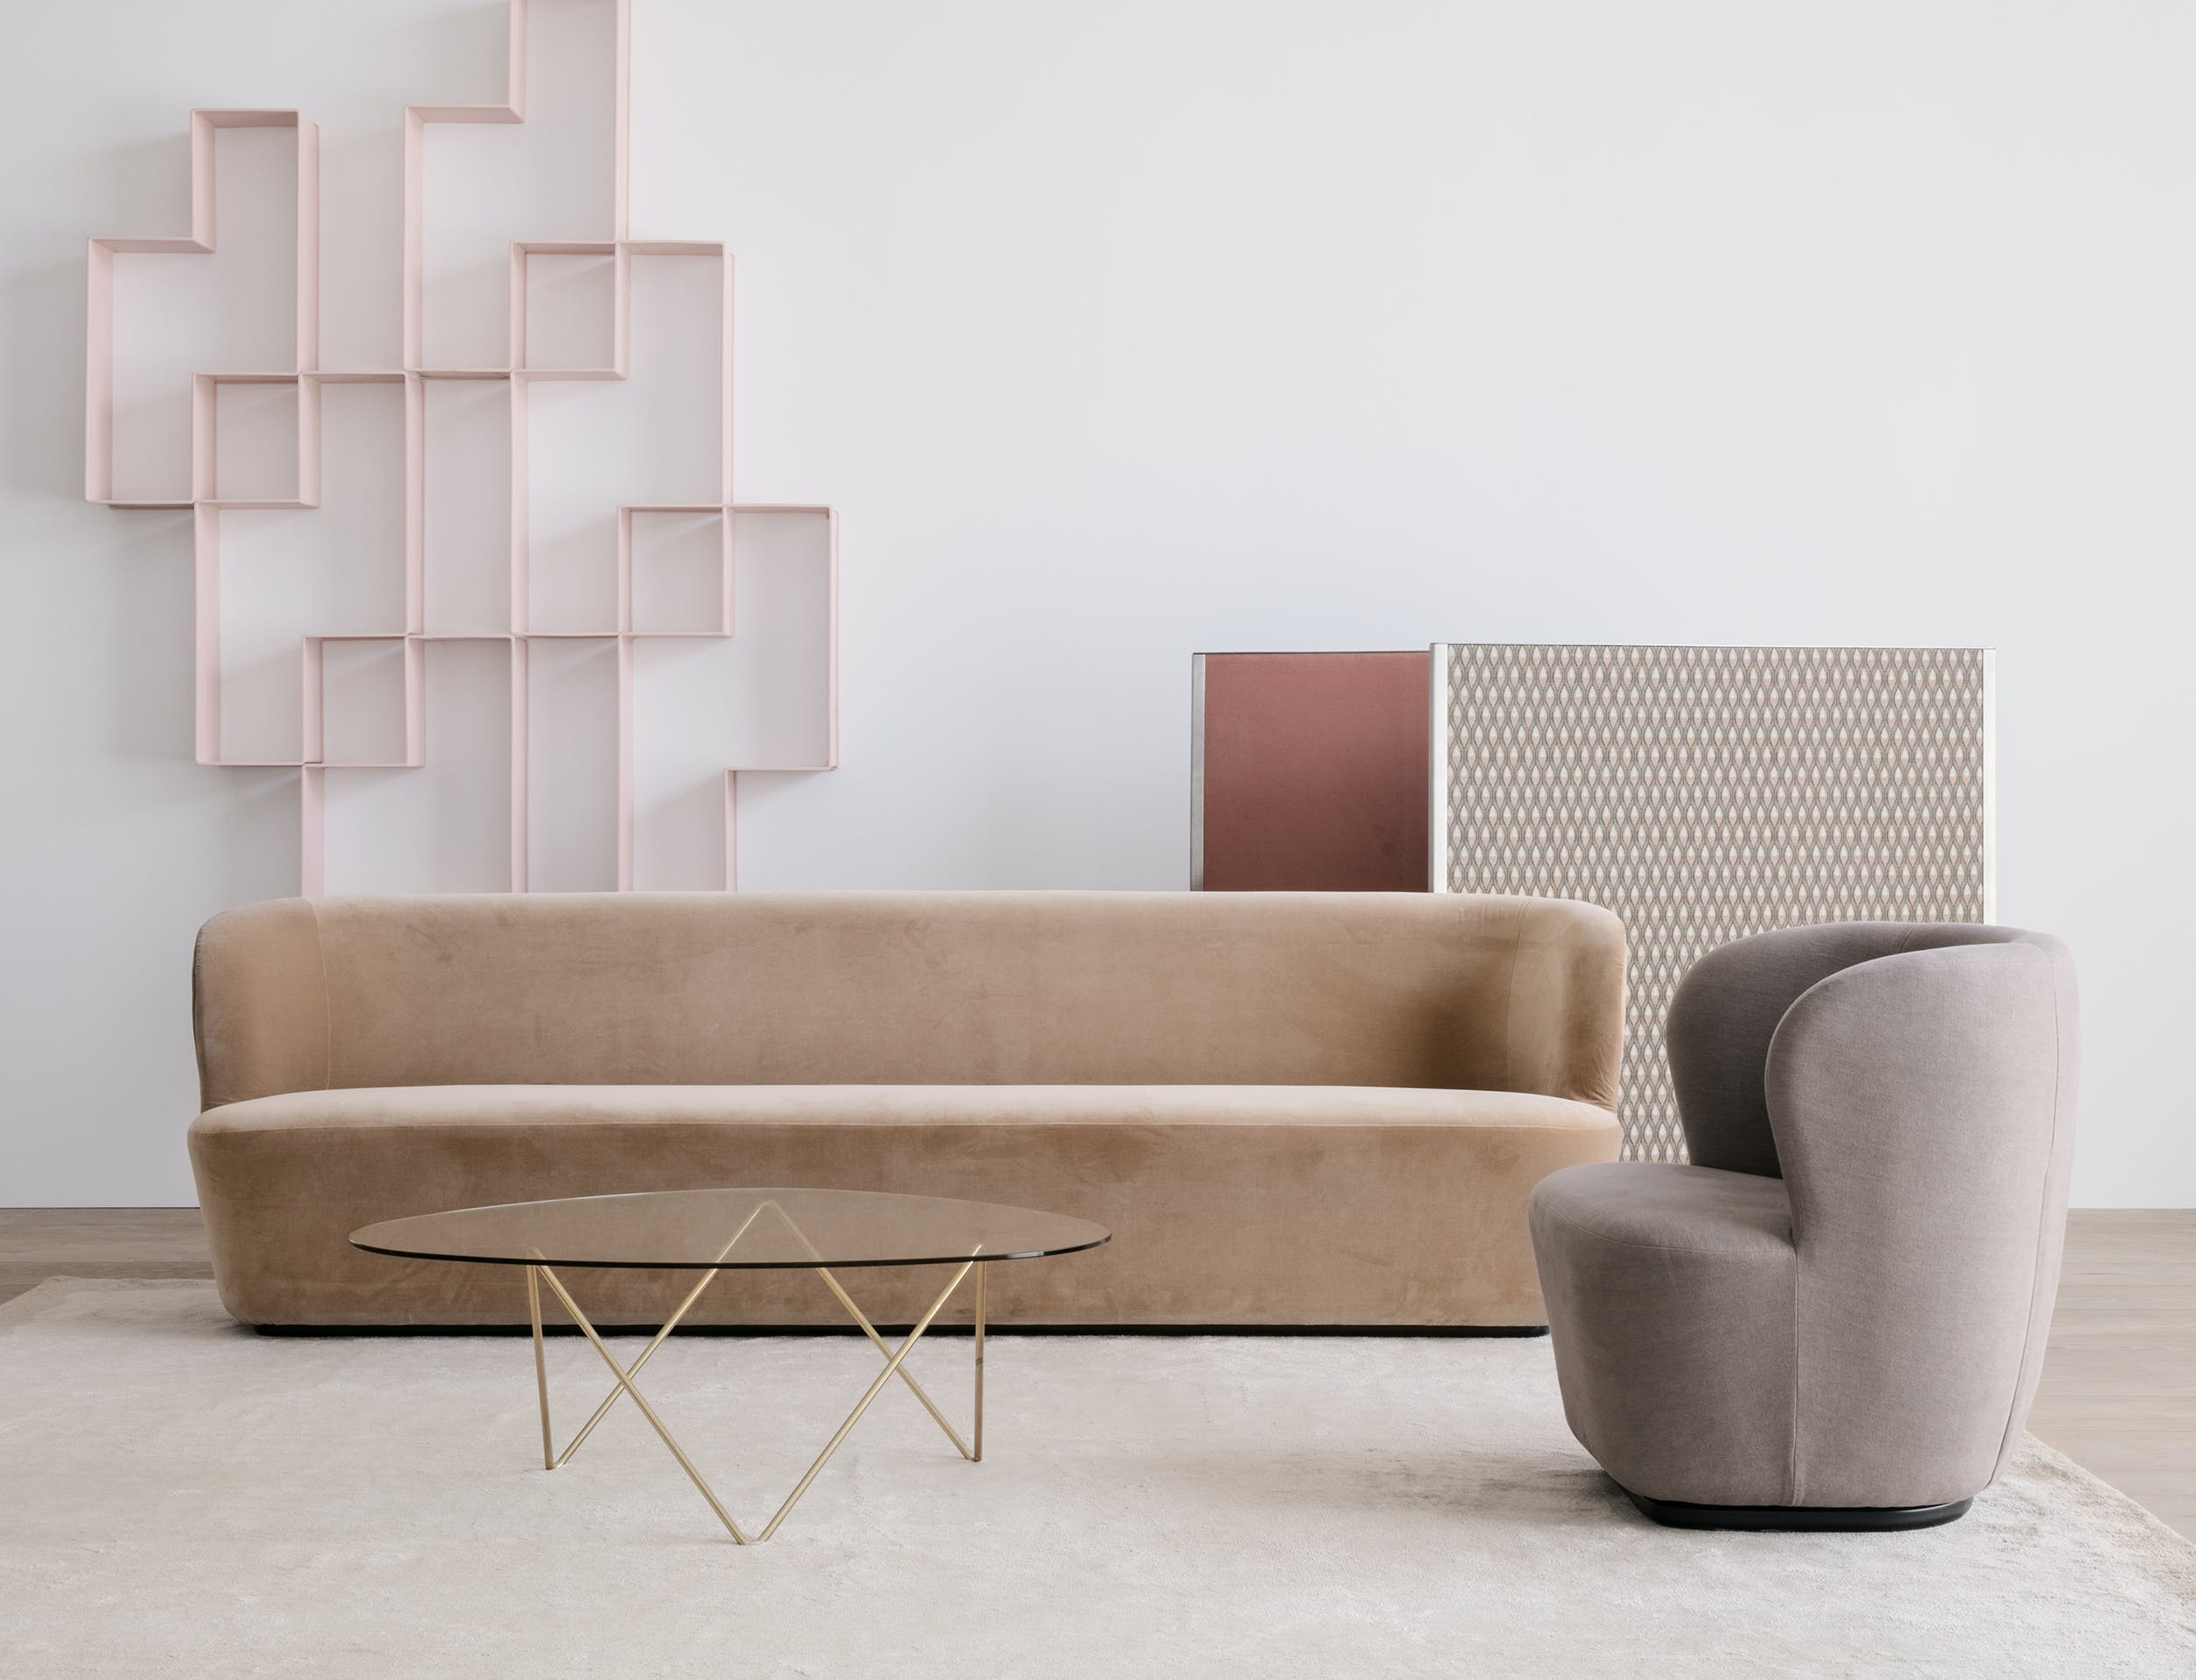 Stay Oval Sofa By Gubi At Haute Living